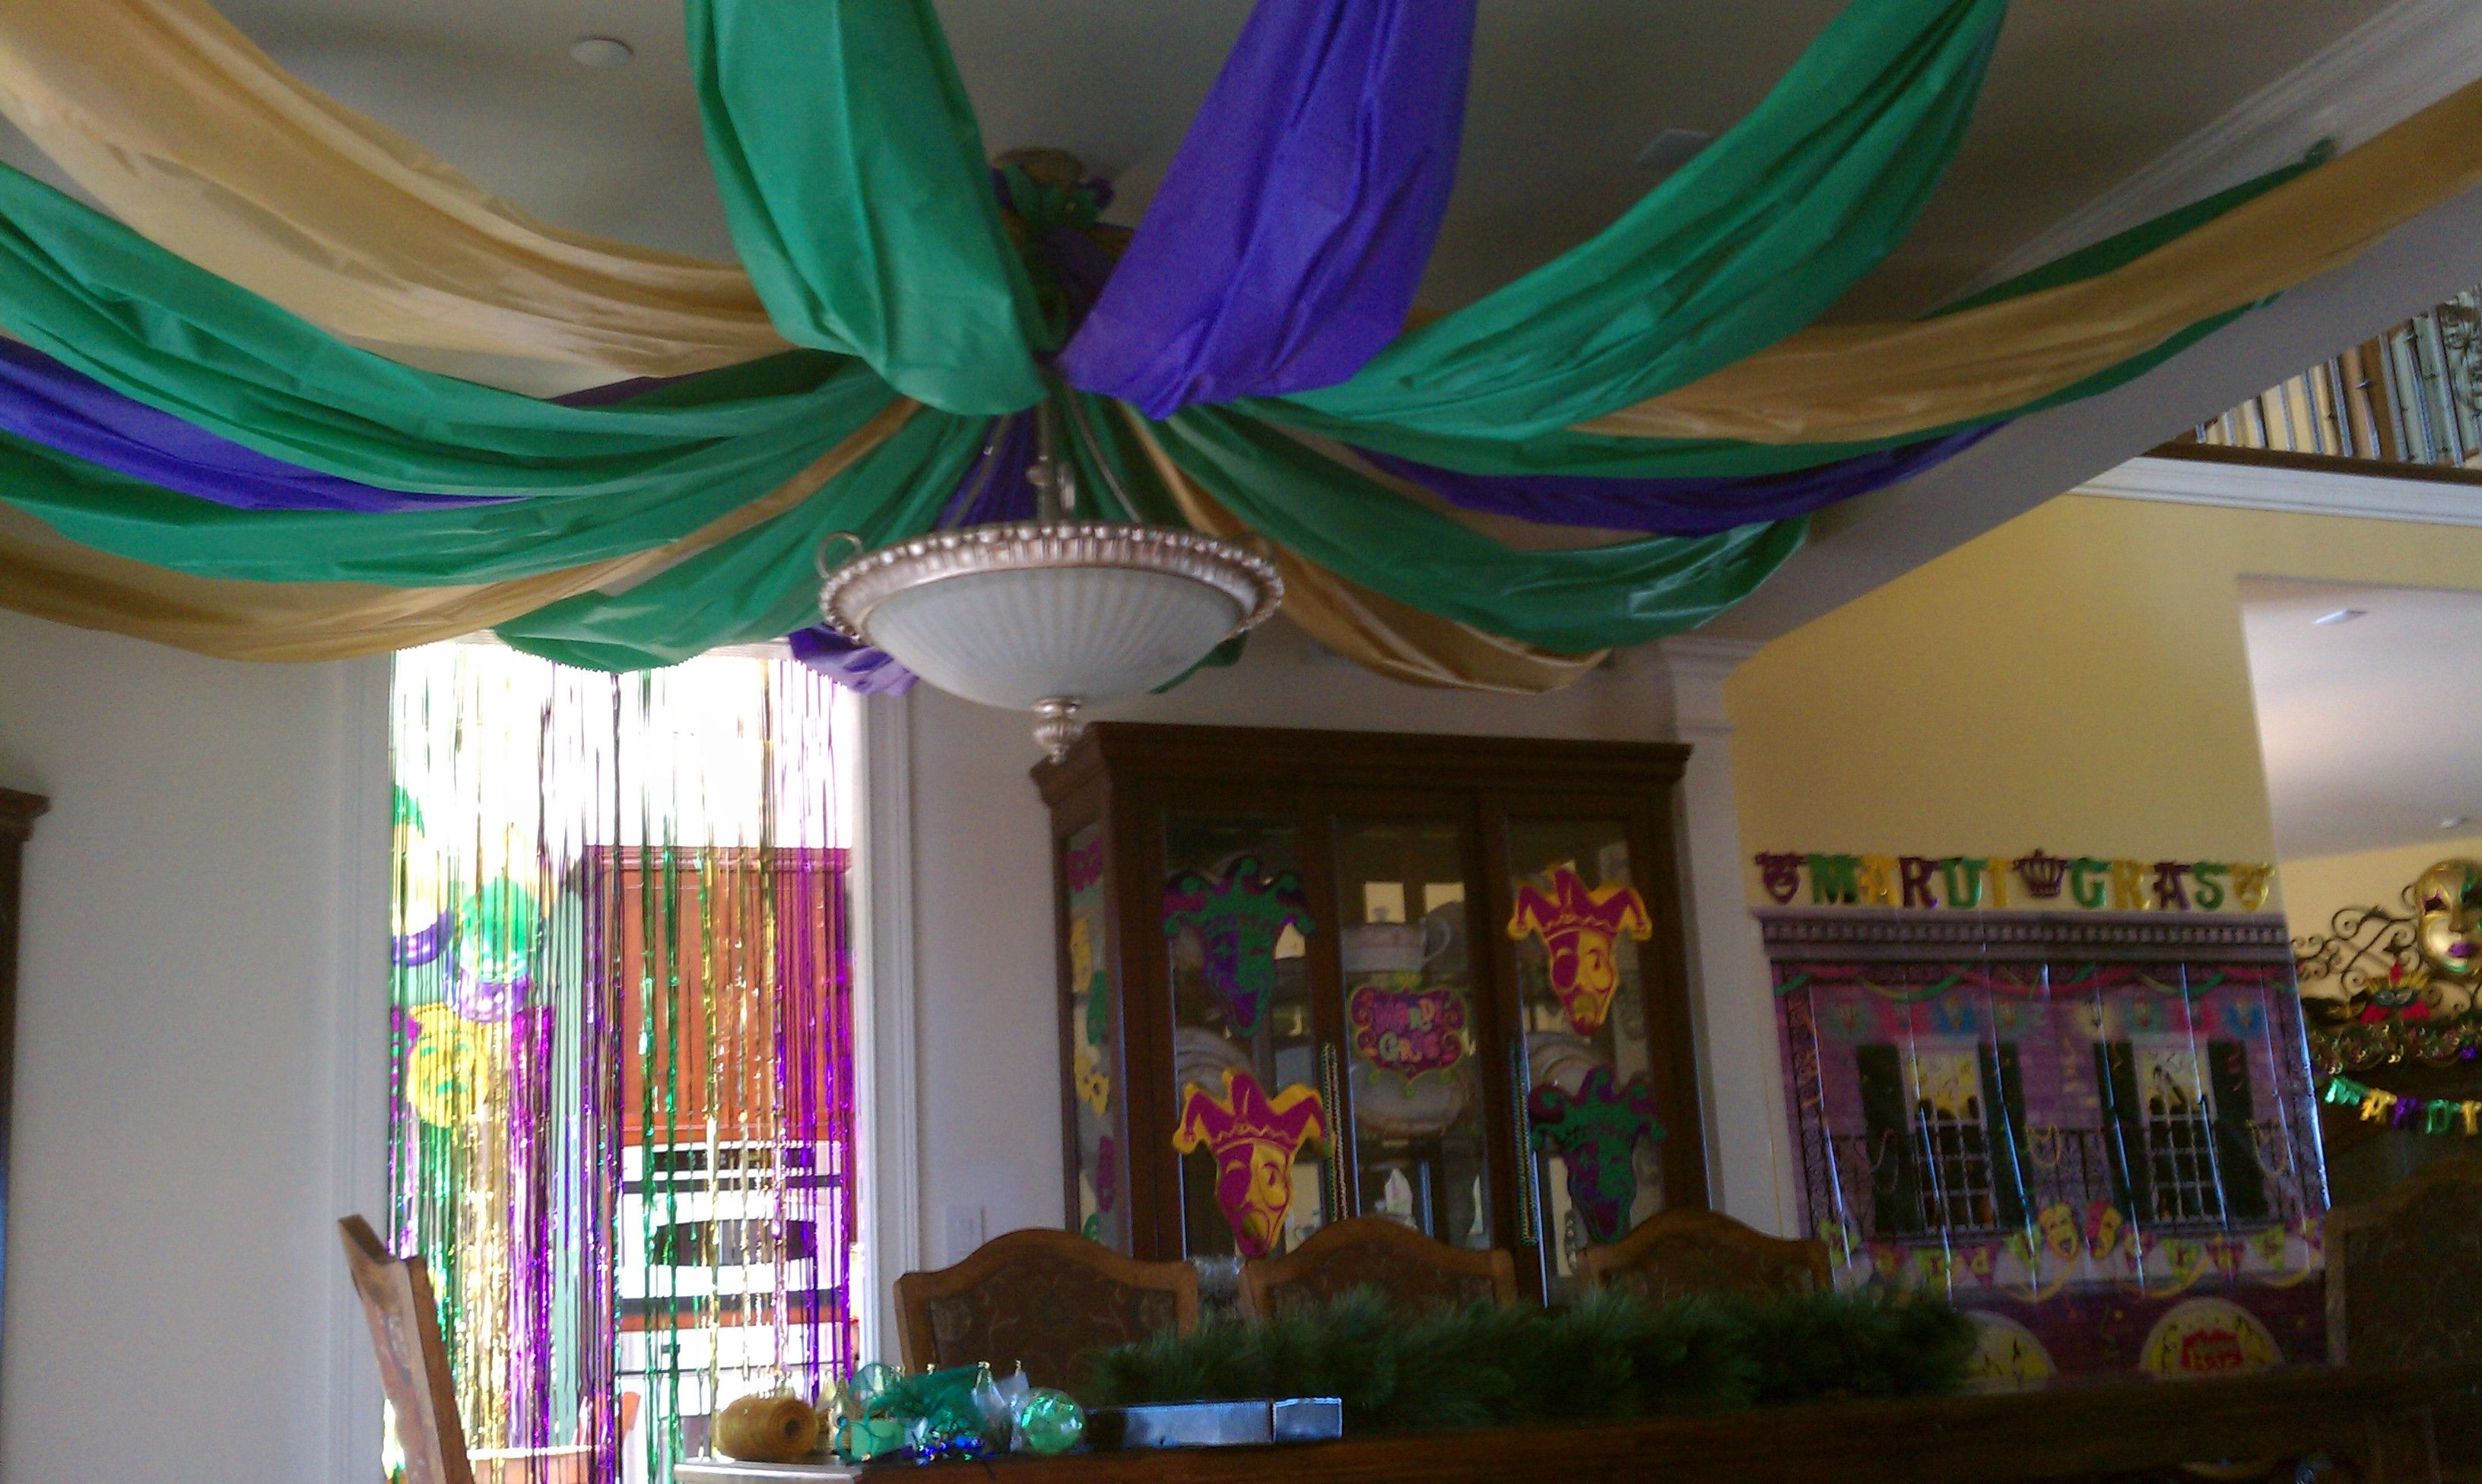 Uncategorized Table Cloth Decorations inexpensive colorful plastic tablecloths draped across ceiling for mardi gras tablecloth decoration drape table cloths from your ceiling